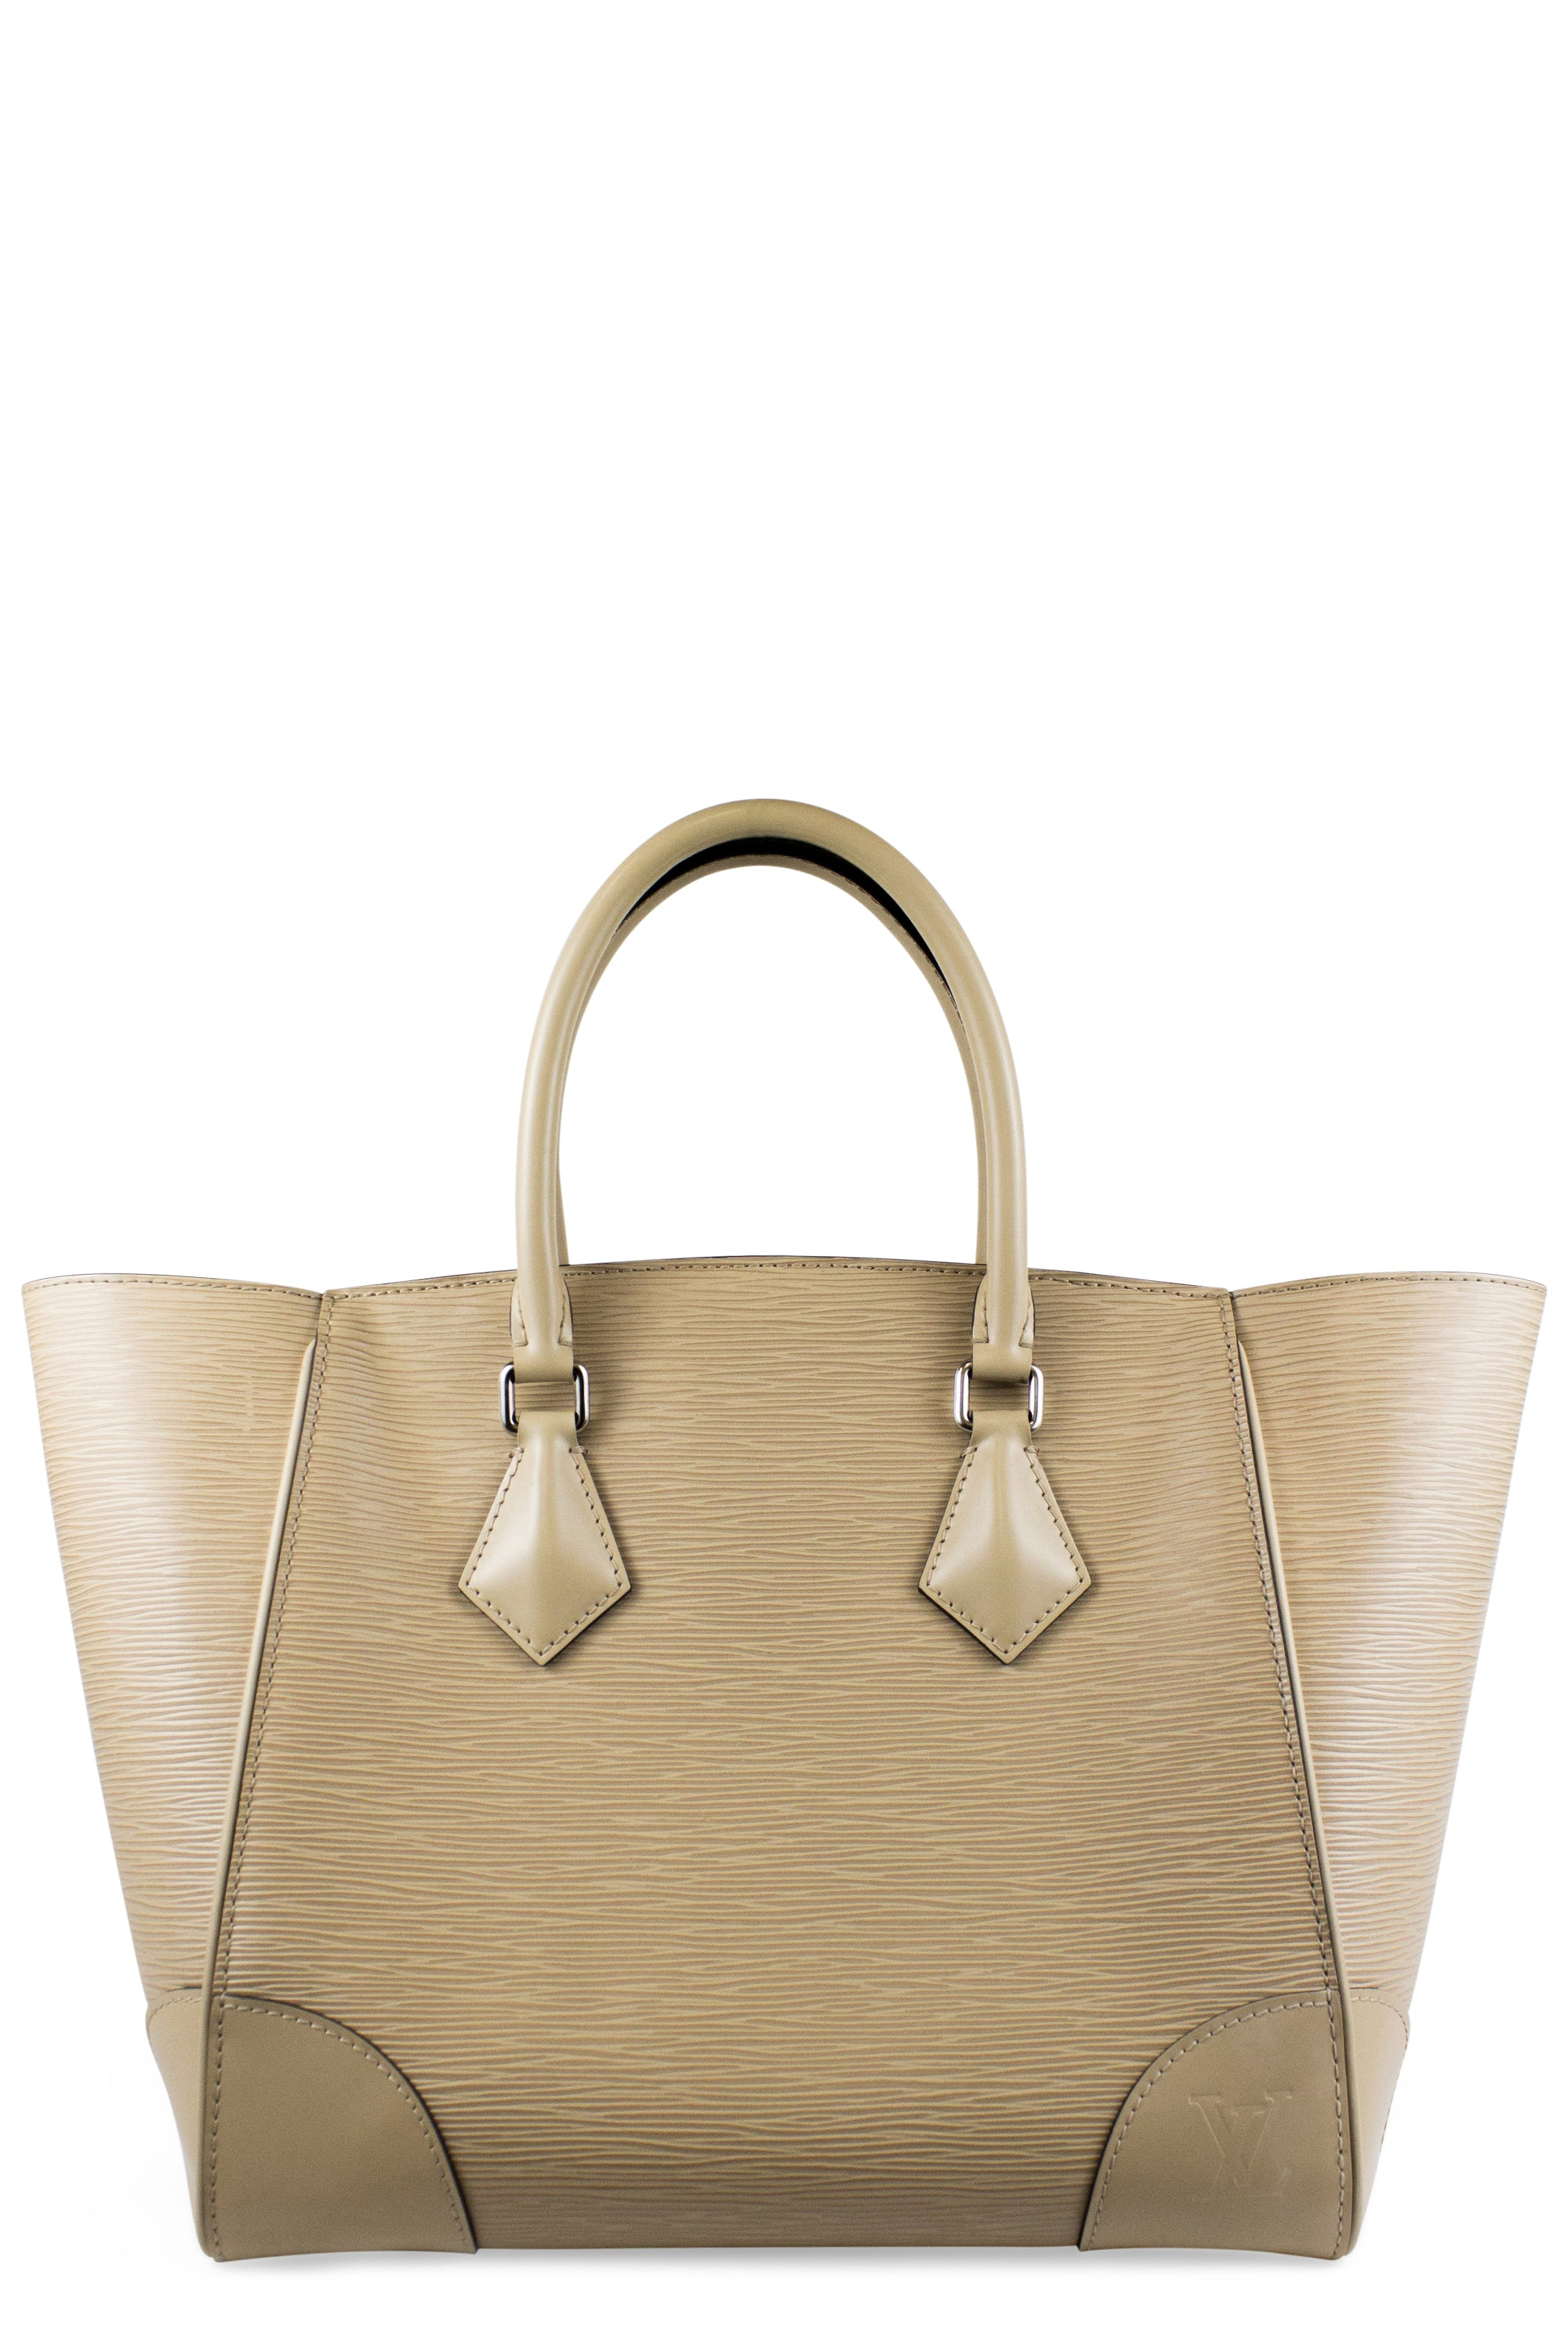 b86f9b76c6e97 LOUIS VUITTON Phenix MM Tote – REAWAKE